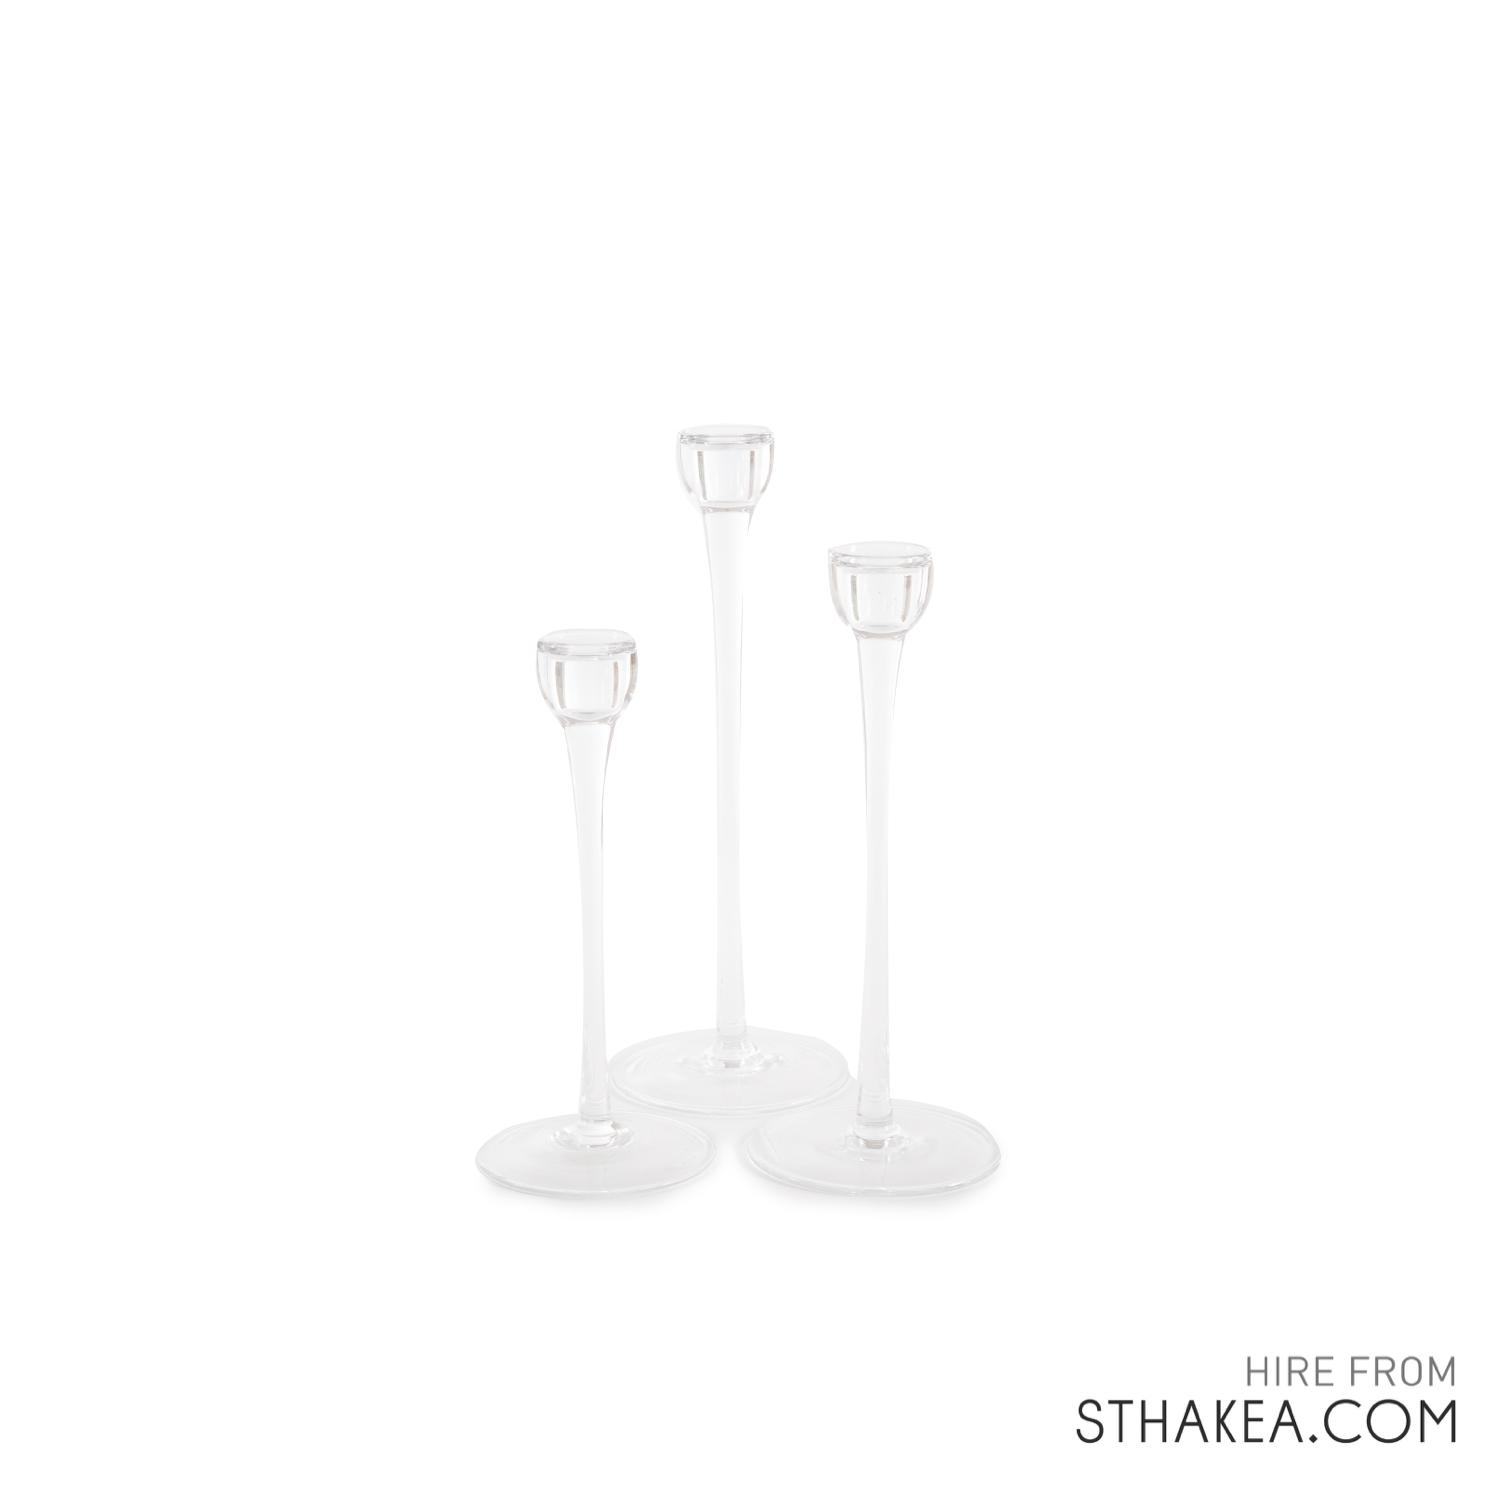 St Hakea Event Hire Melbourne Glass Candlesticks.jpg